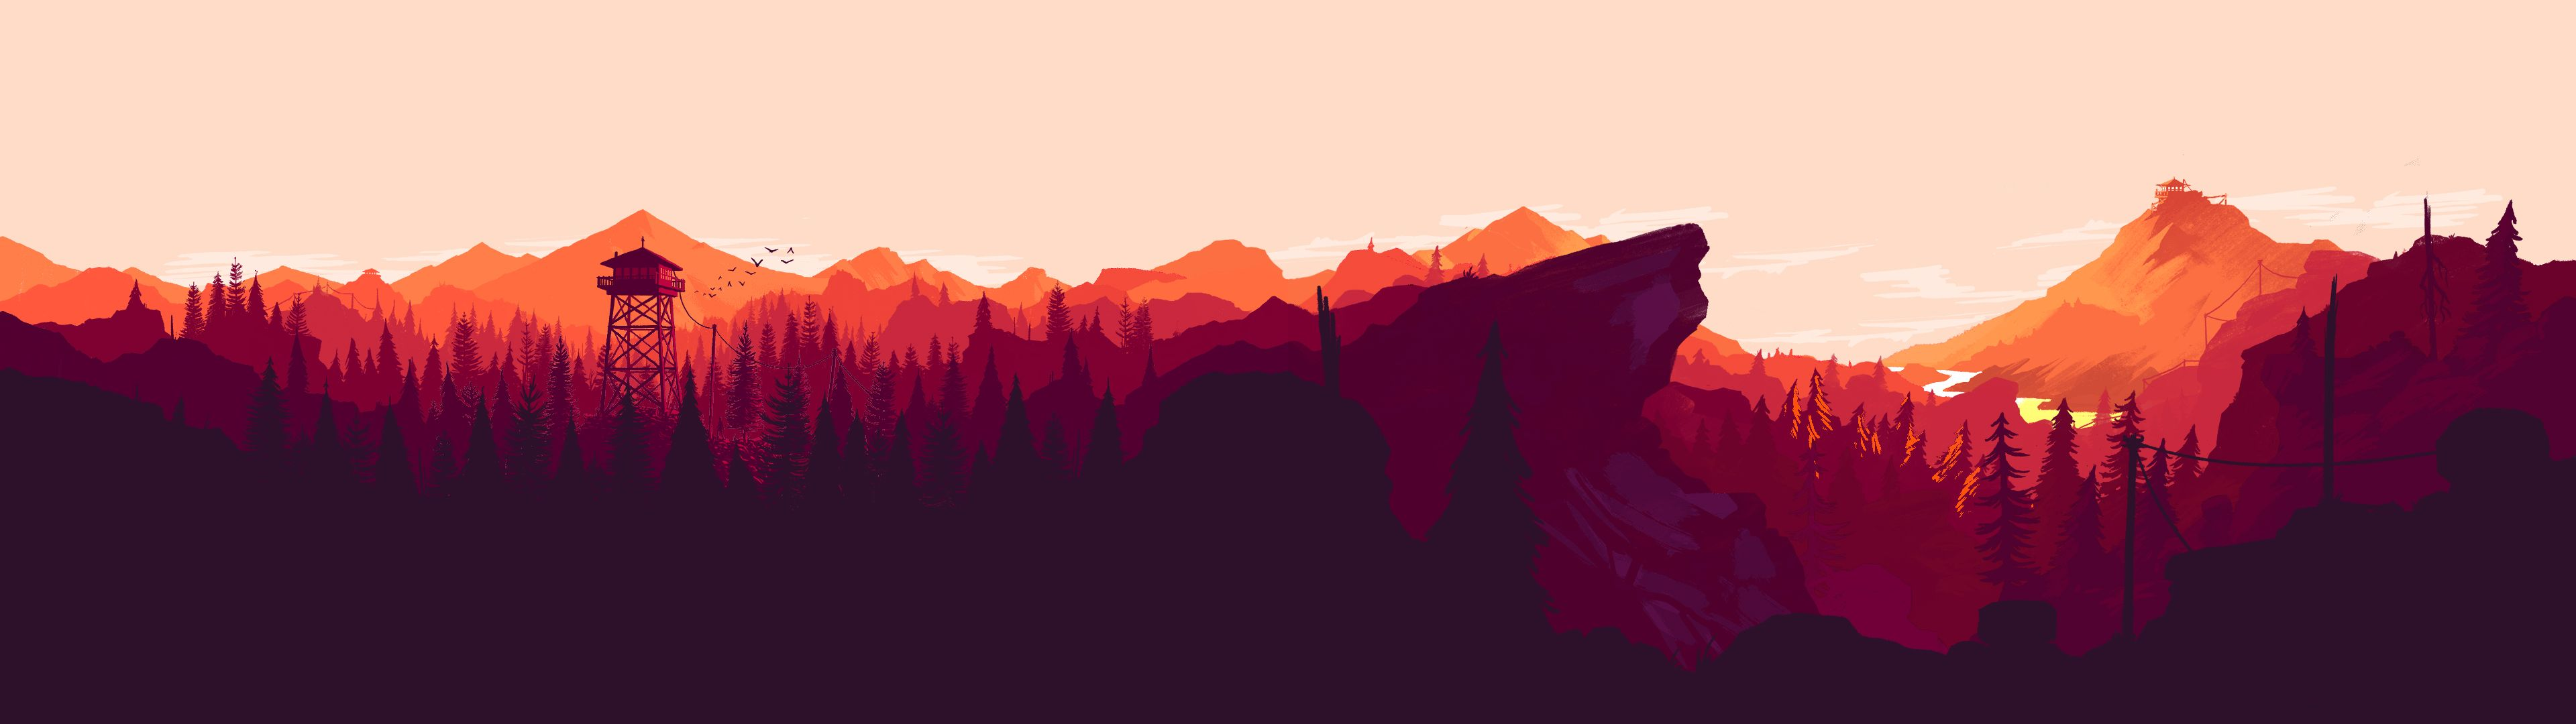 I Made Some Dual And Single Monitor Firewatch Wallpapers For Different Times Of The Day